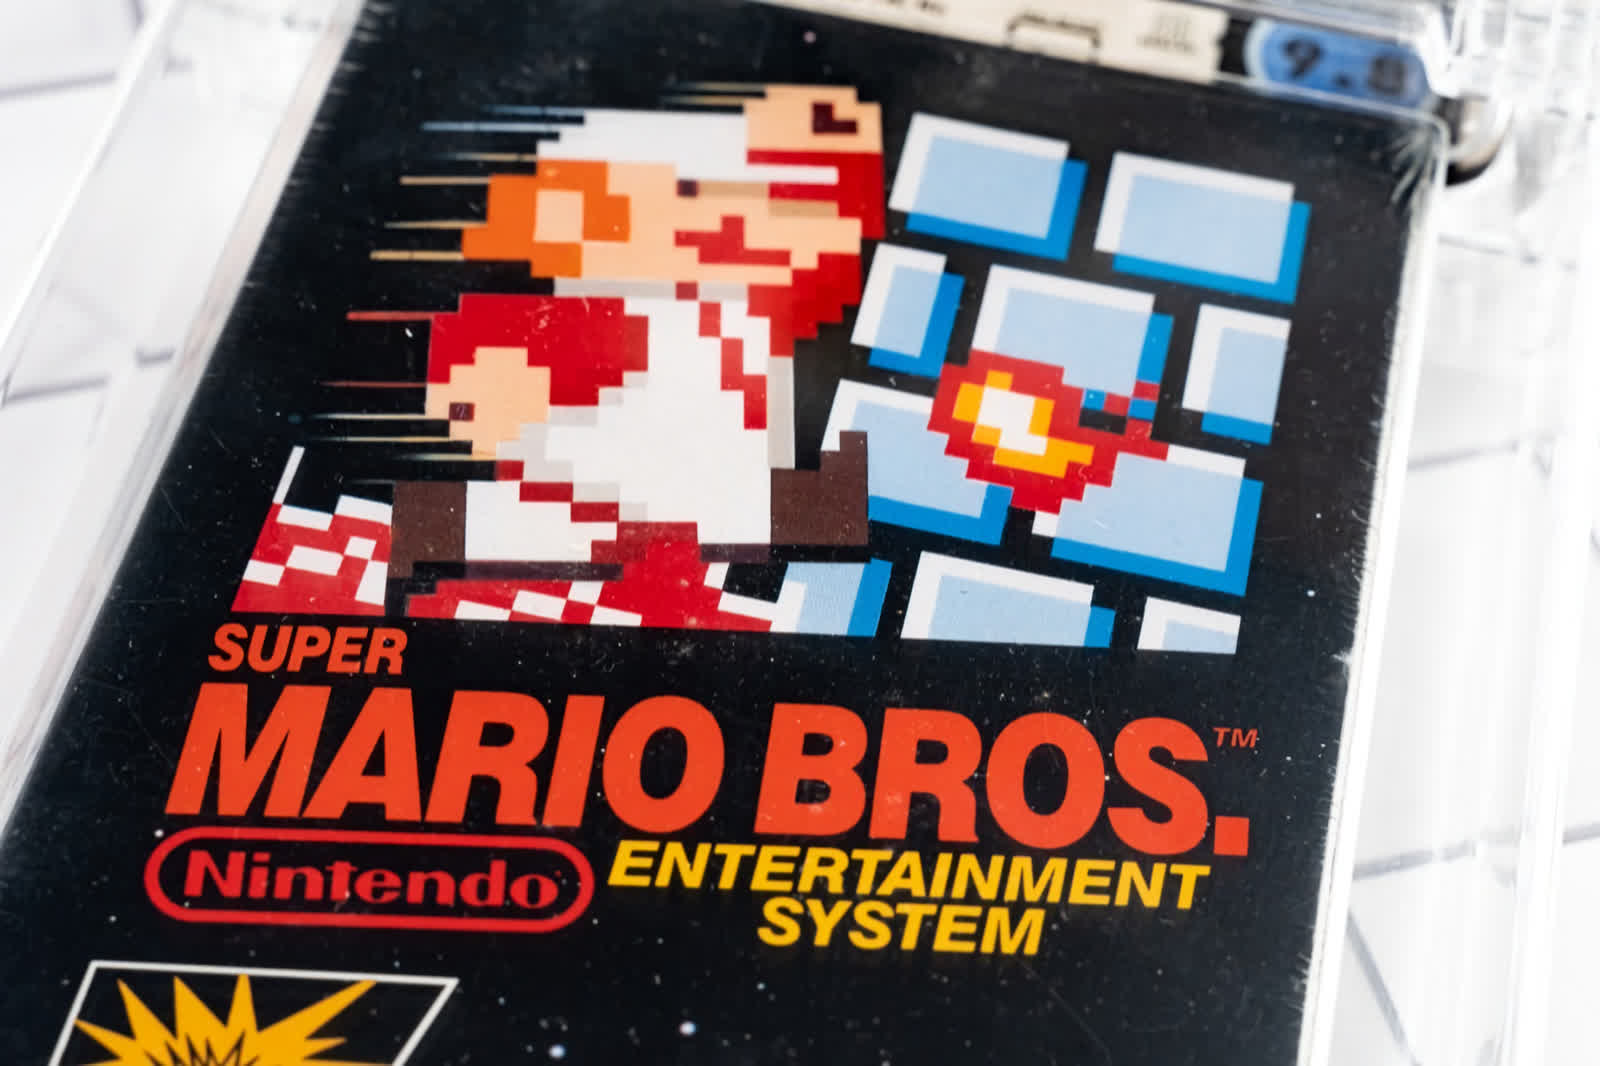 Someone just paid $2 million for a sealed copy of Super Mario Bros.